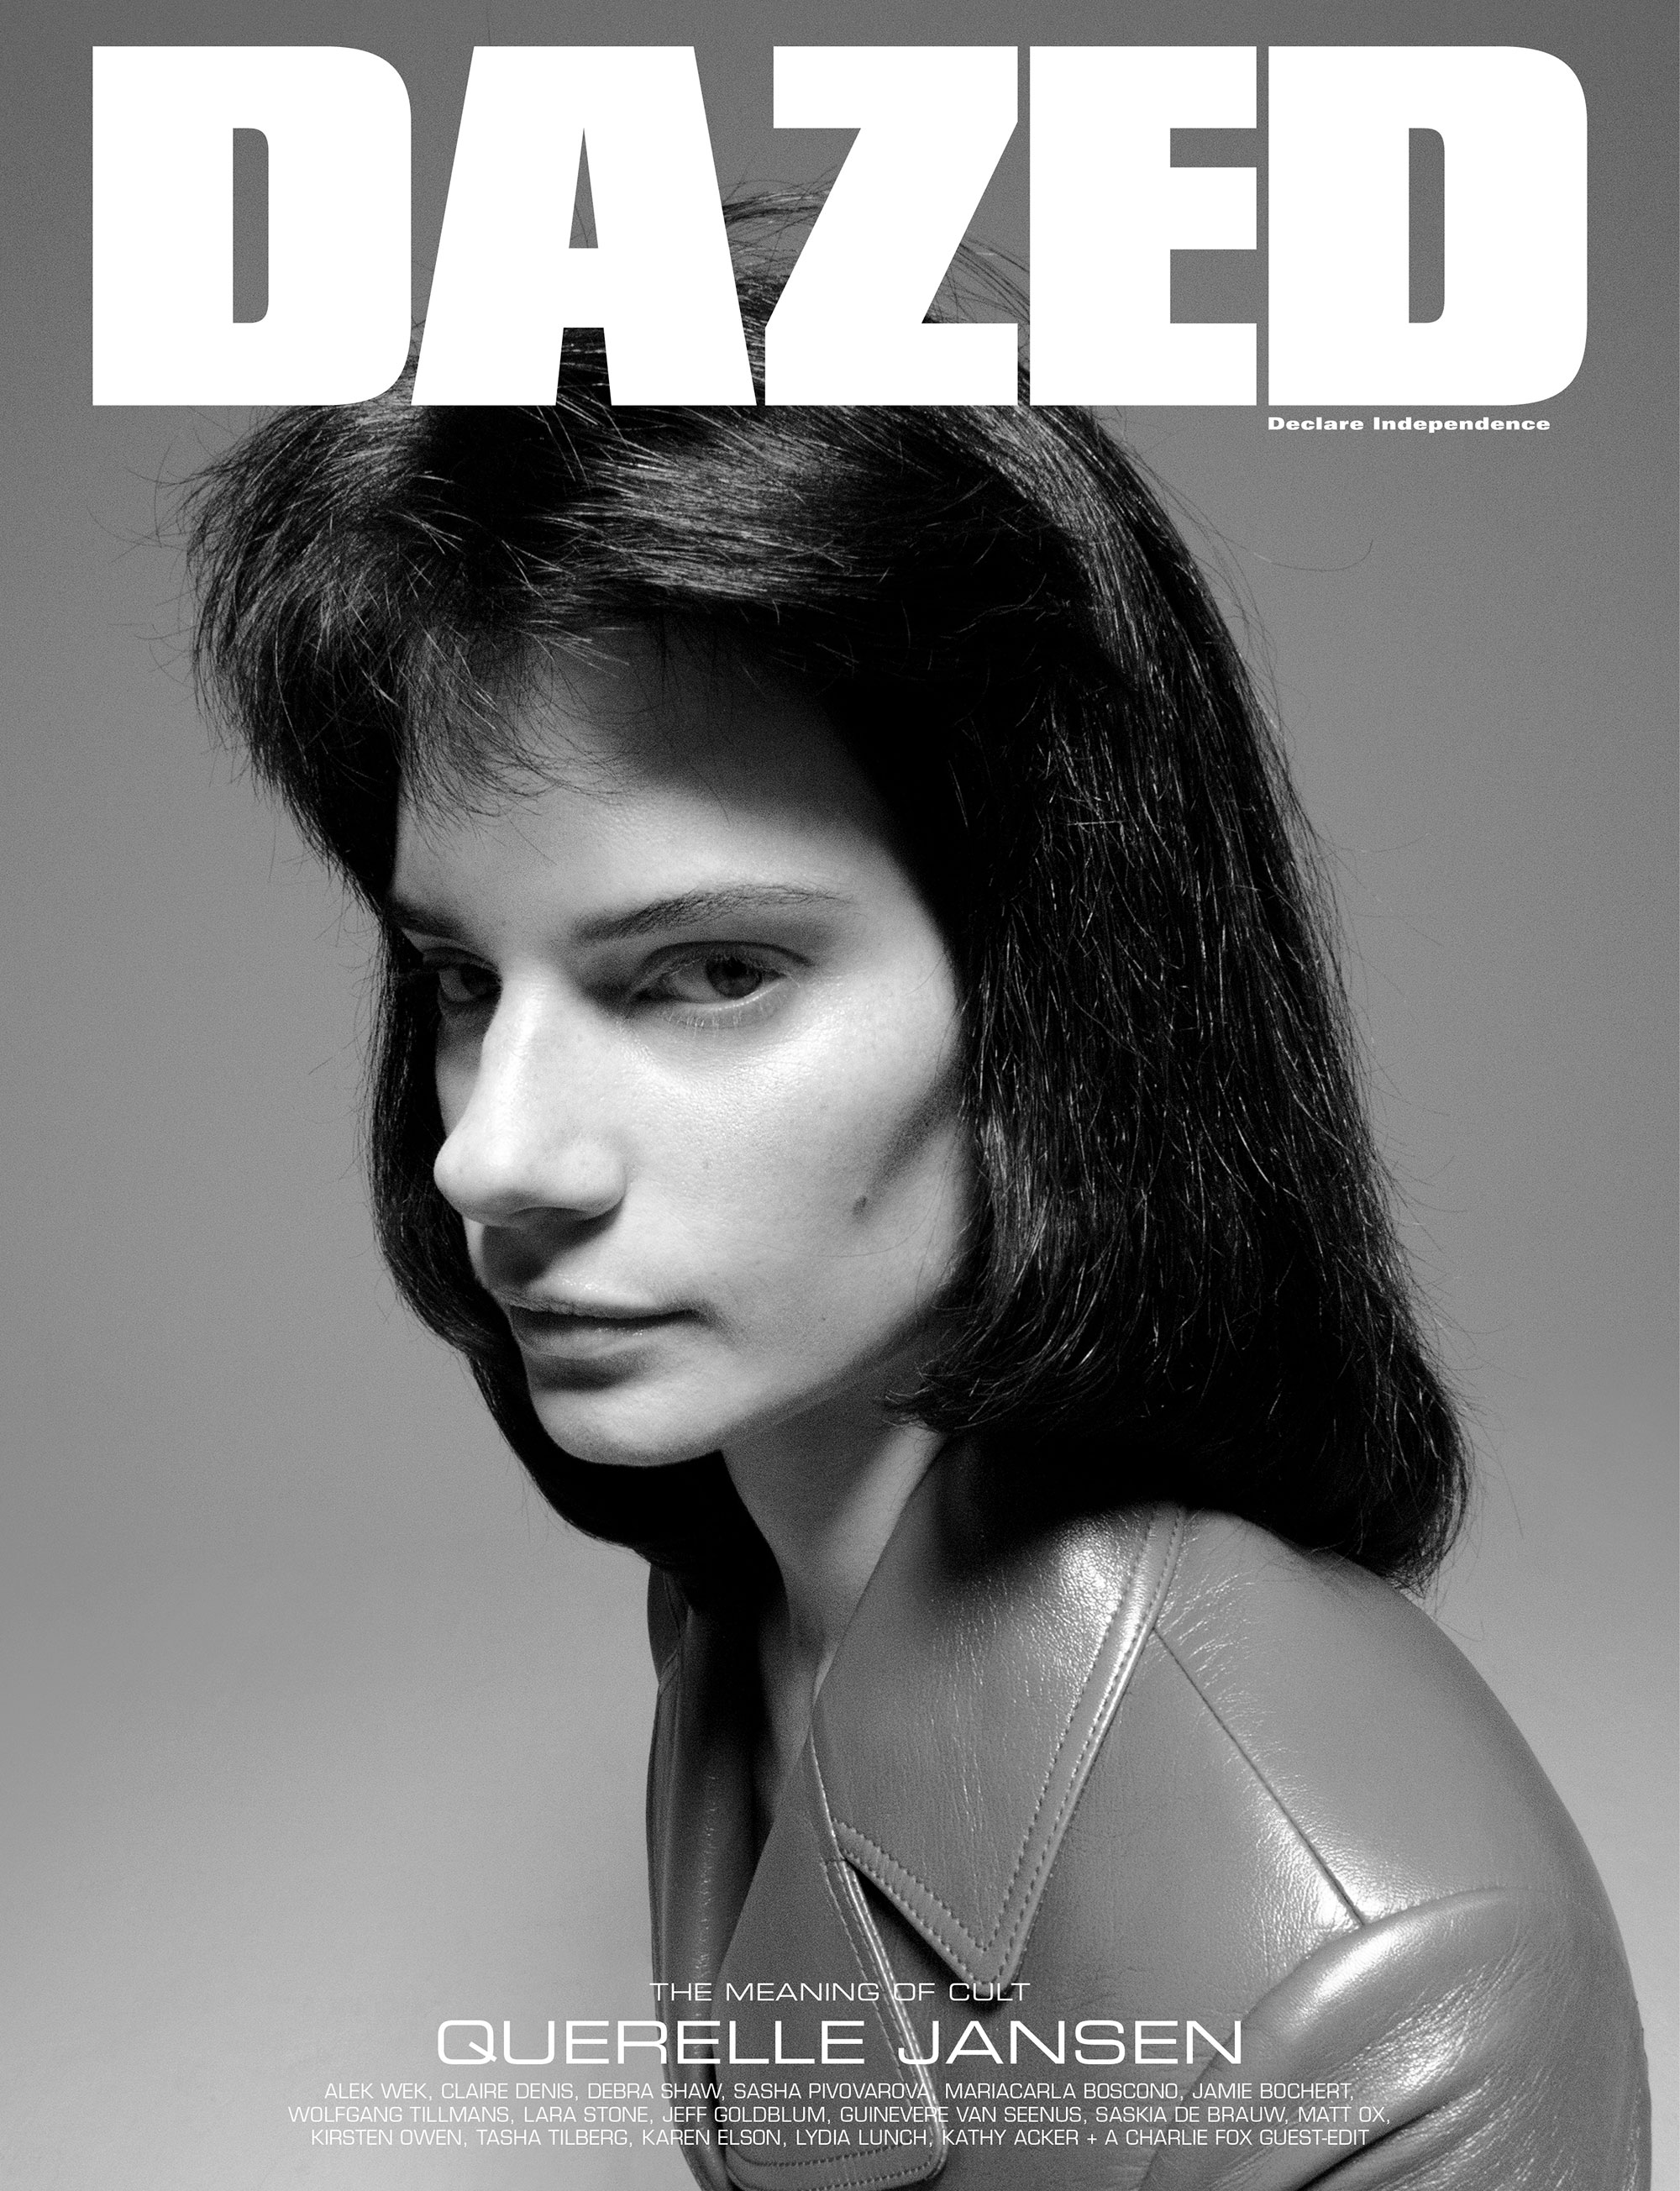 Querelle Jansen by Julien Martinez Leclerc for Dazed Magazine's SS2019 'The Meaning of Cult' issue.